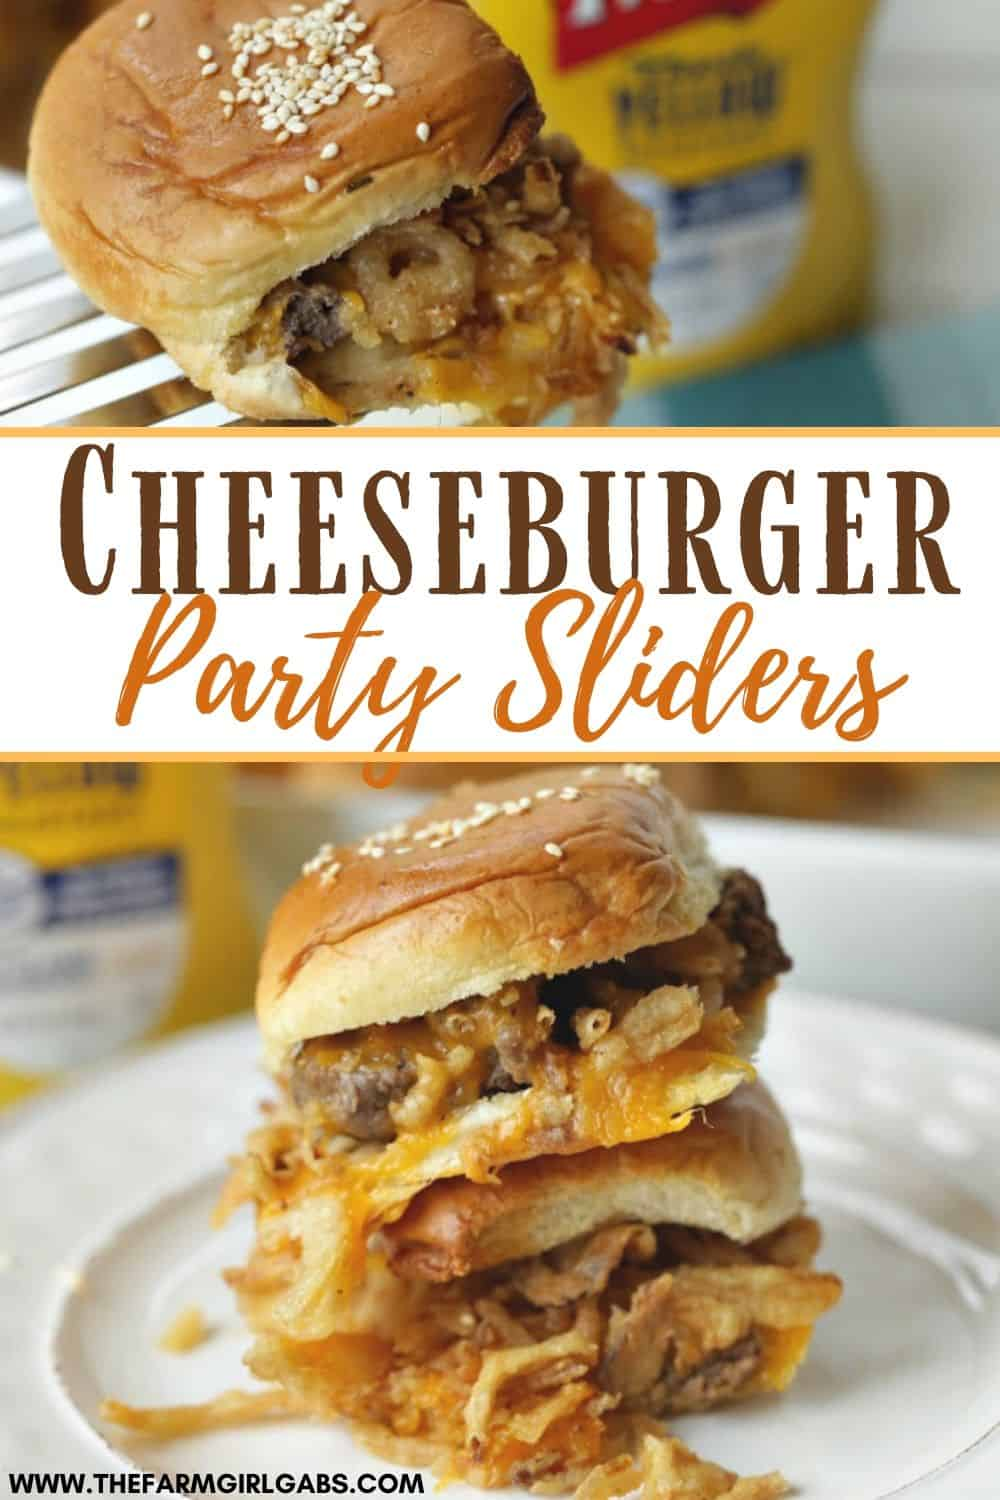 It's not a game day party without the food. These Cheeseburger Party Sliders are the perfect game day recipe. Score a touchdown with friends and family with this easy slider recipe. #Sliders #Cheeseburger #footballfood #GameDayRecipe #PartyRecipe #Superbowlrecipe